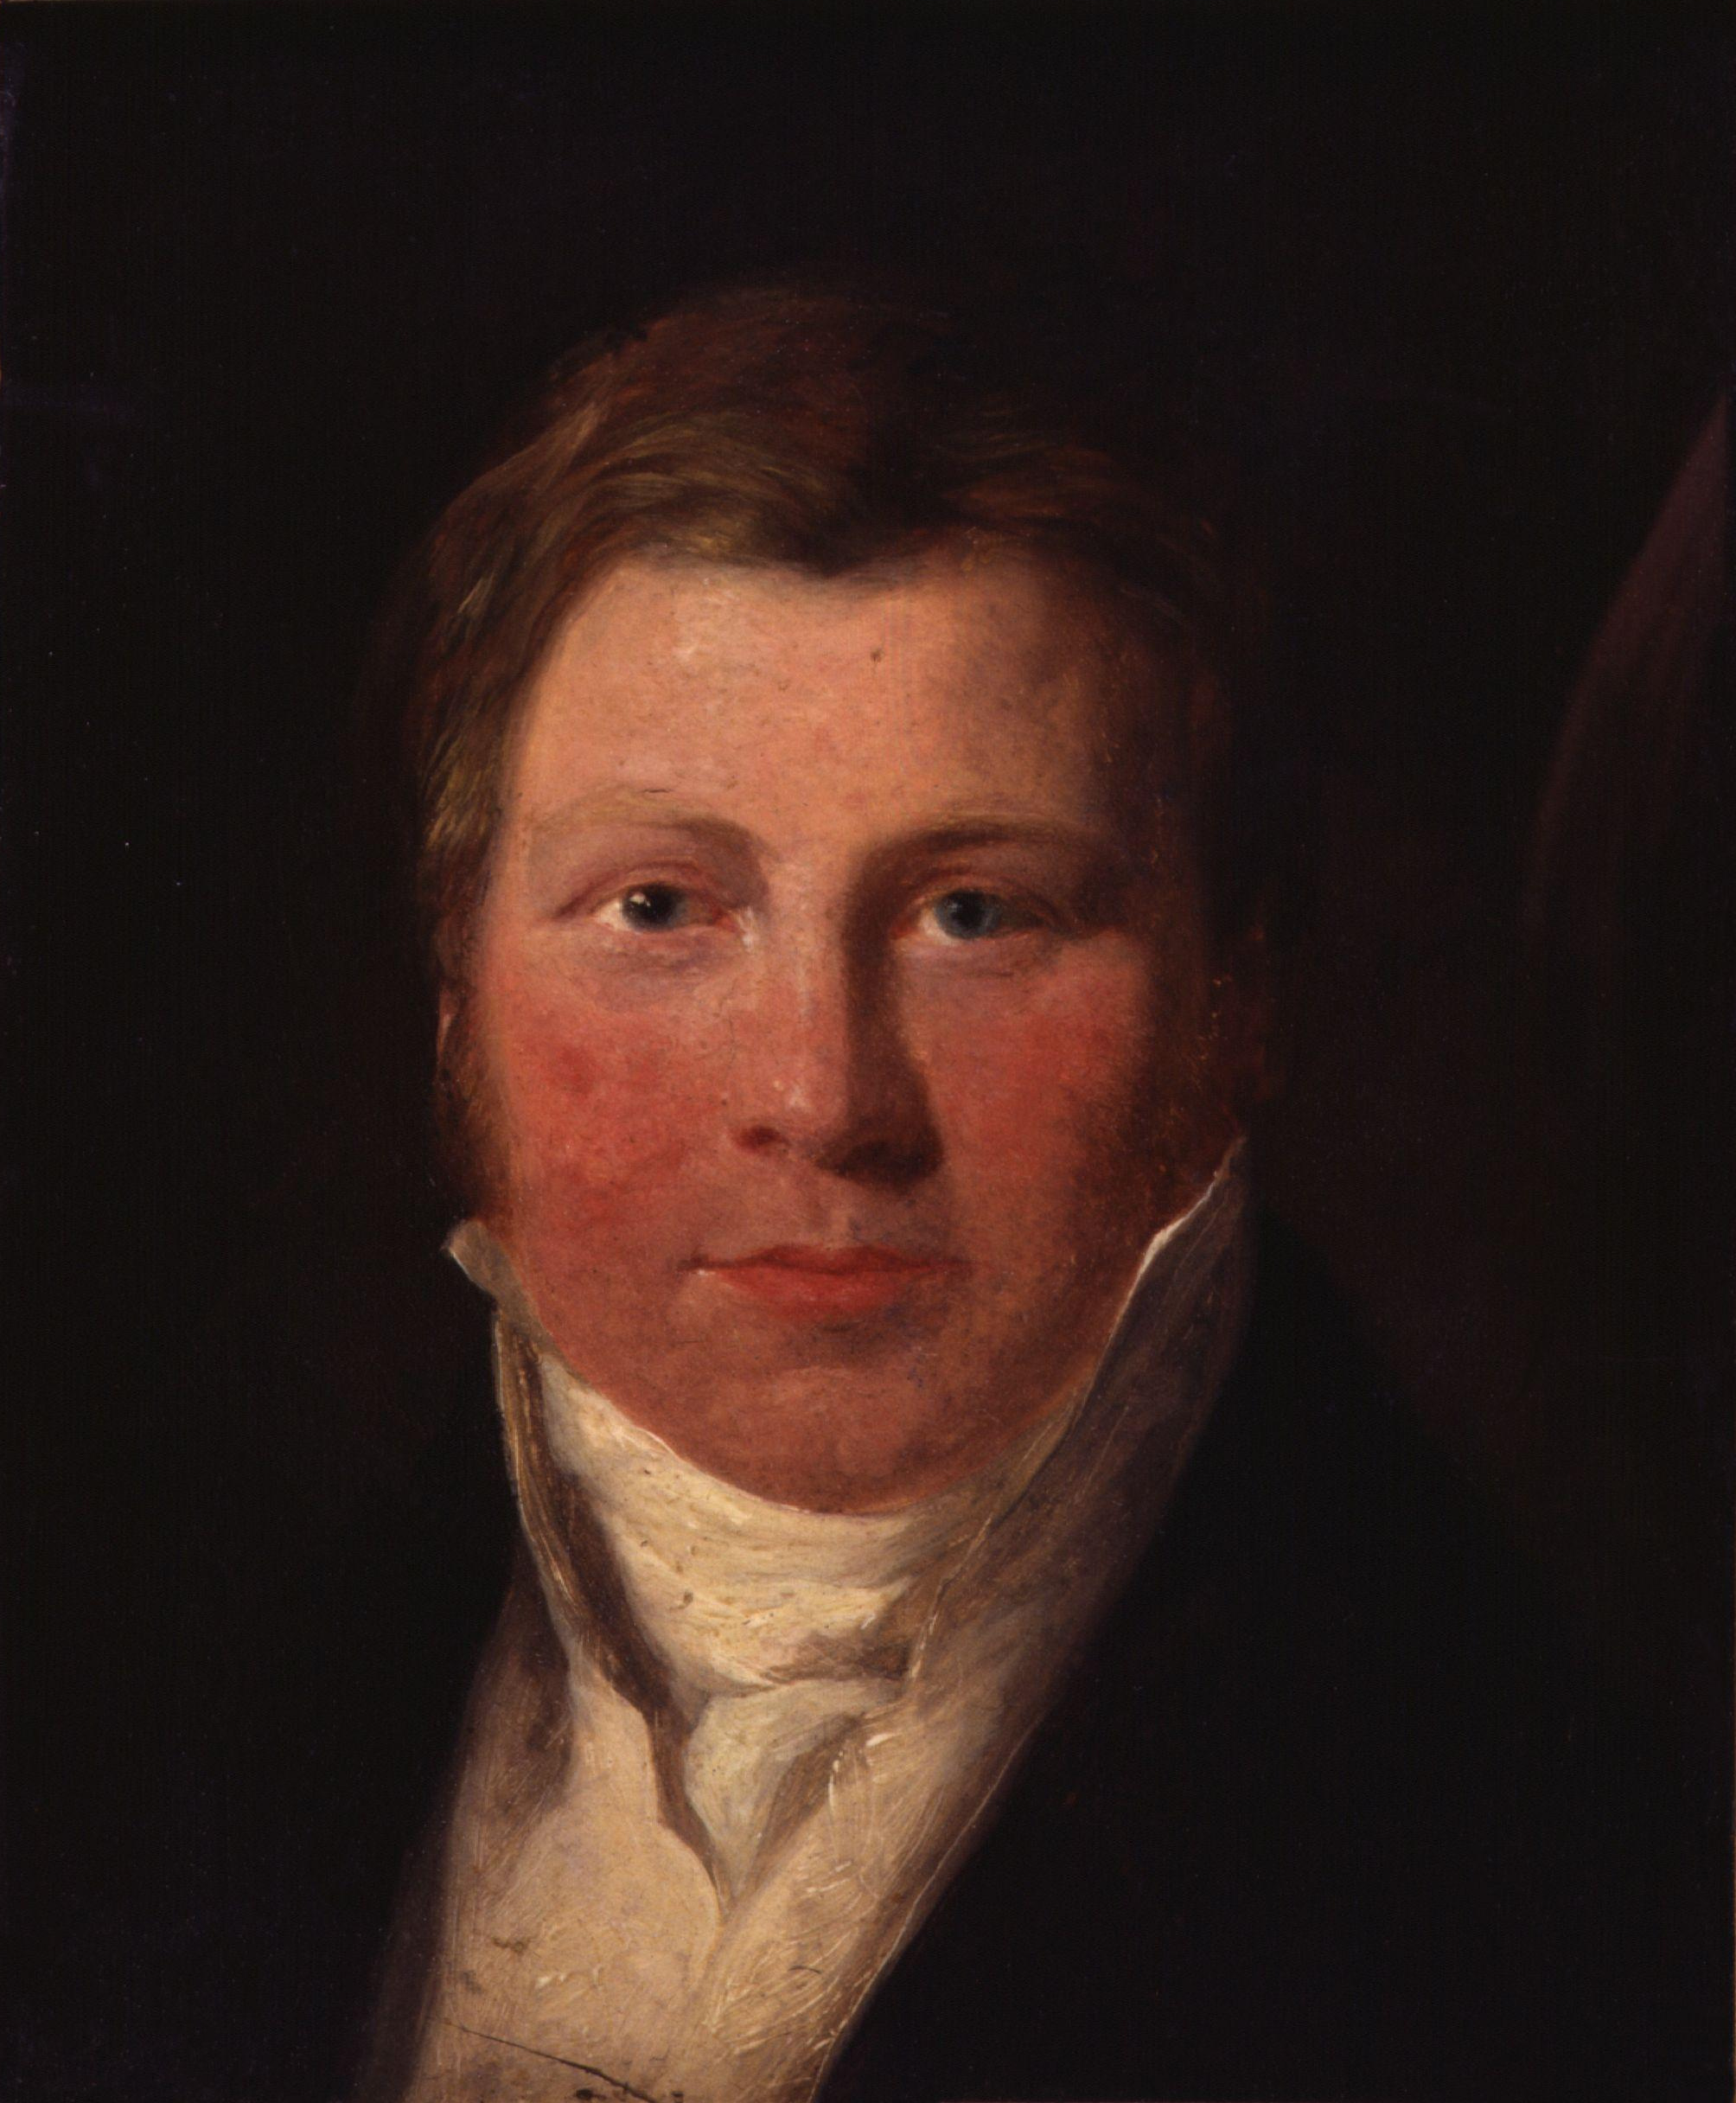 Plump-faced man